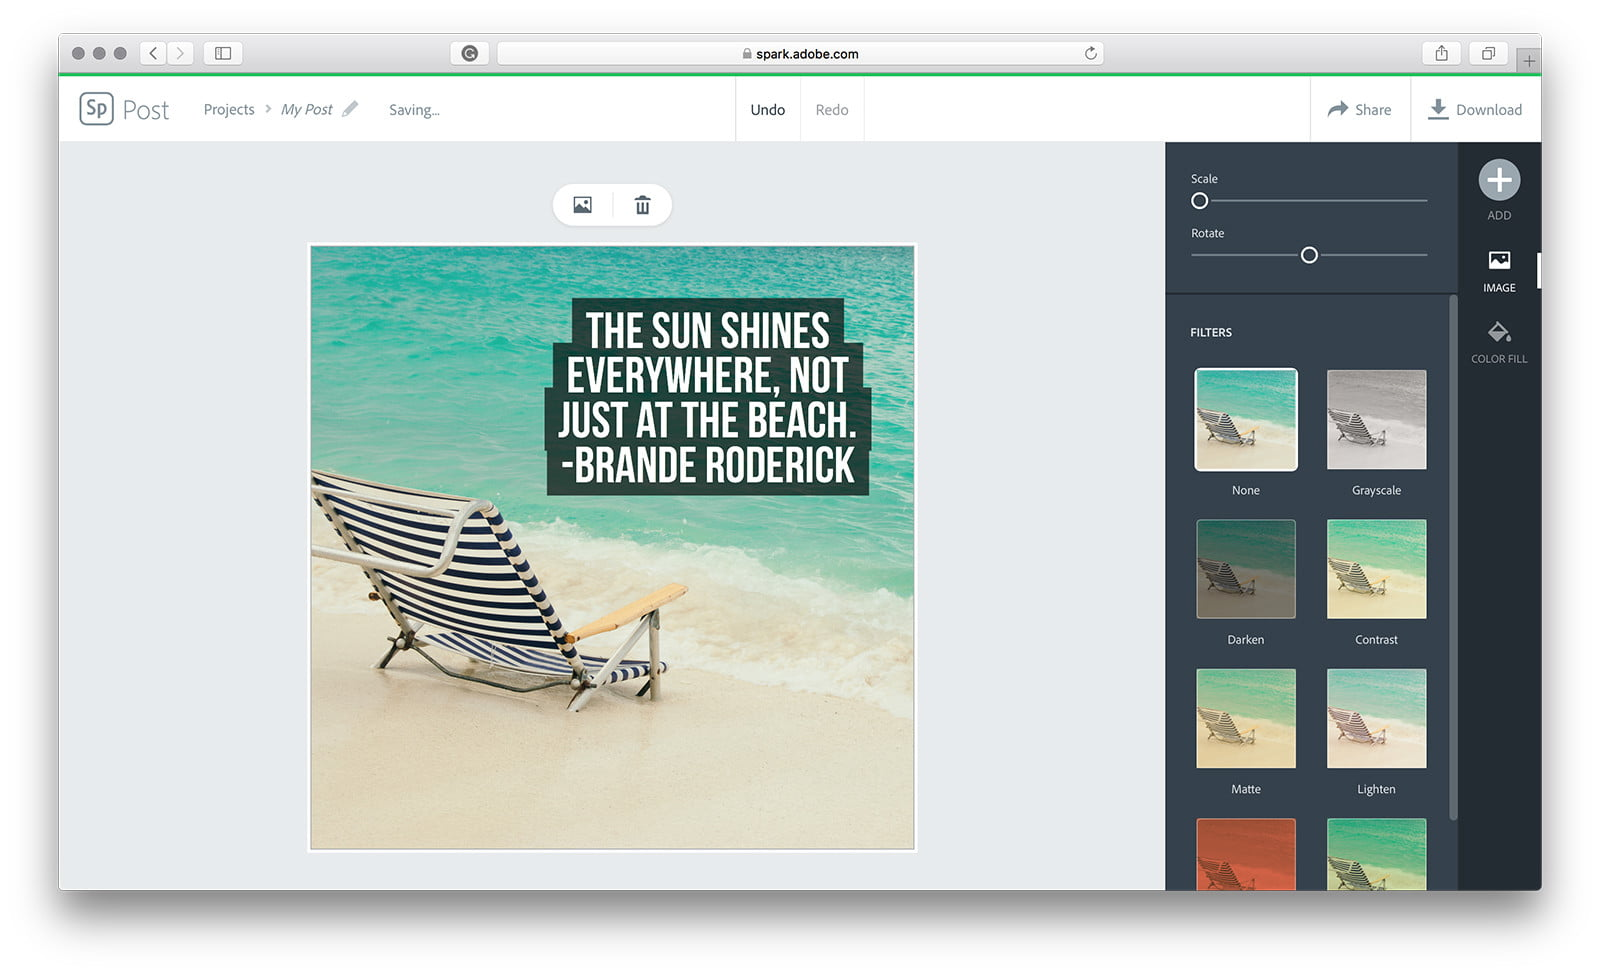 How to Use Adobe Spark Post to Spice up Your Social Media